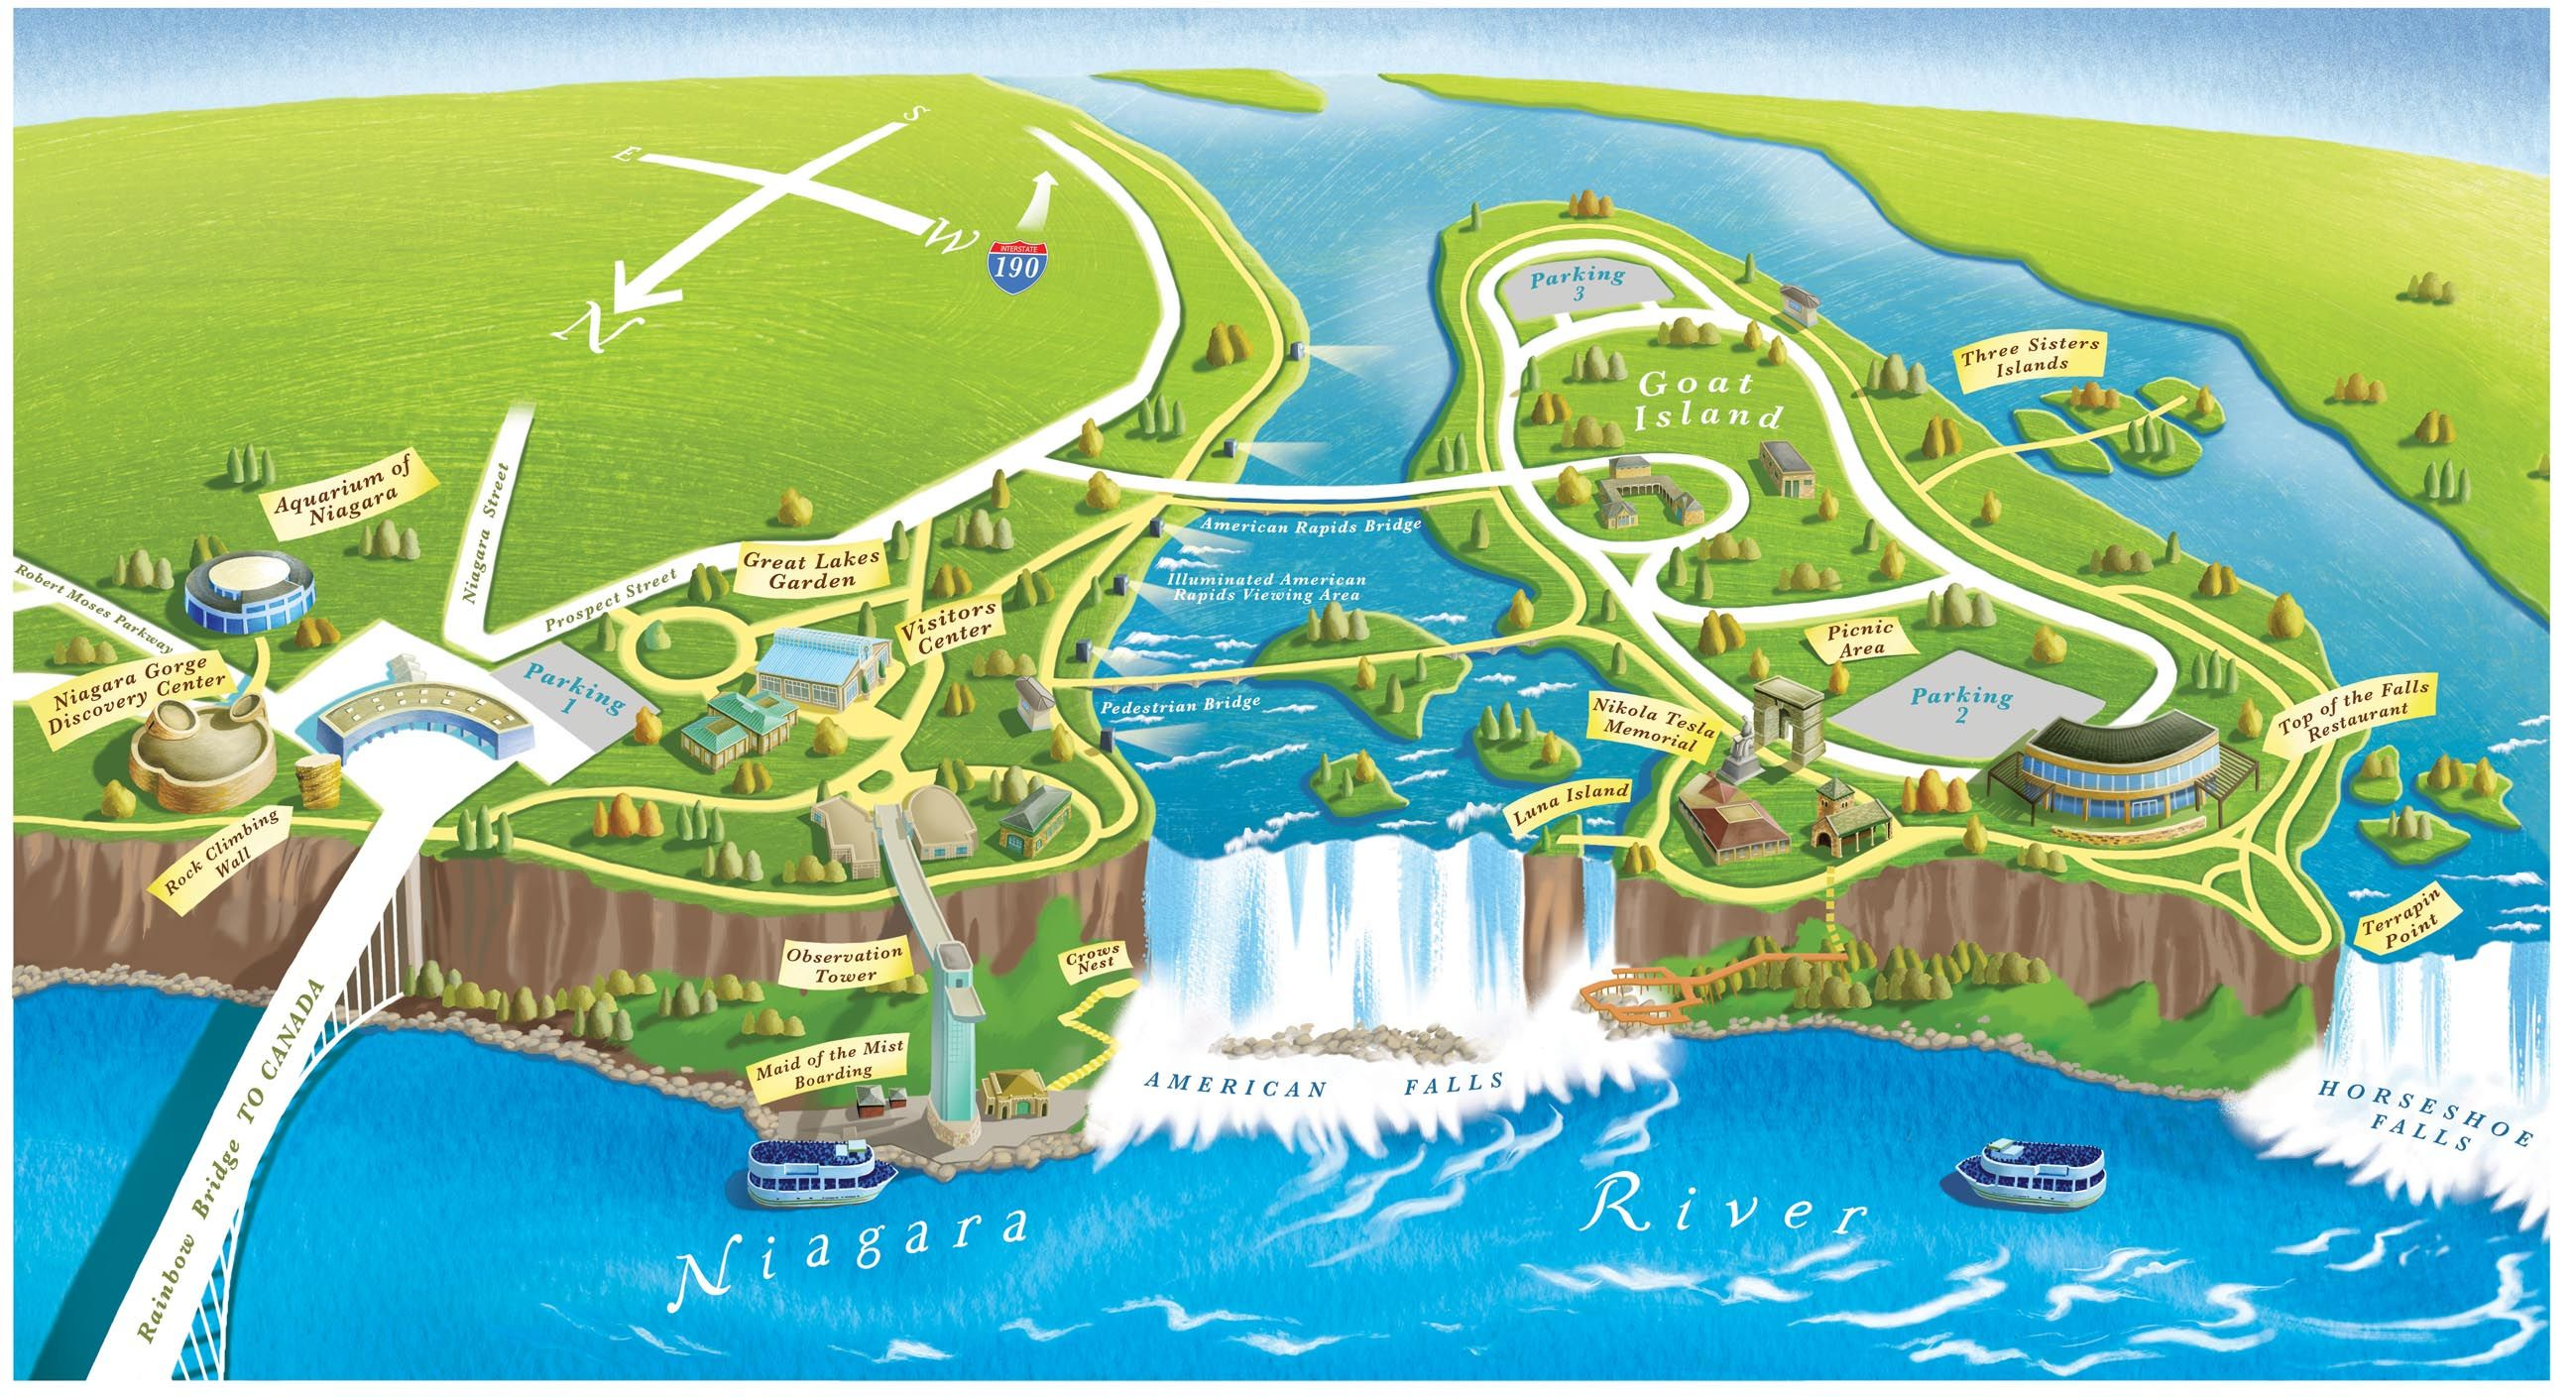 Niagara Falls On Us Map Niagara Falls State Park, New York. Definitely going to visit the